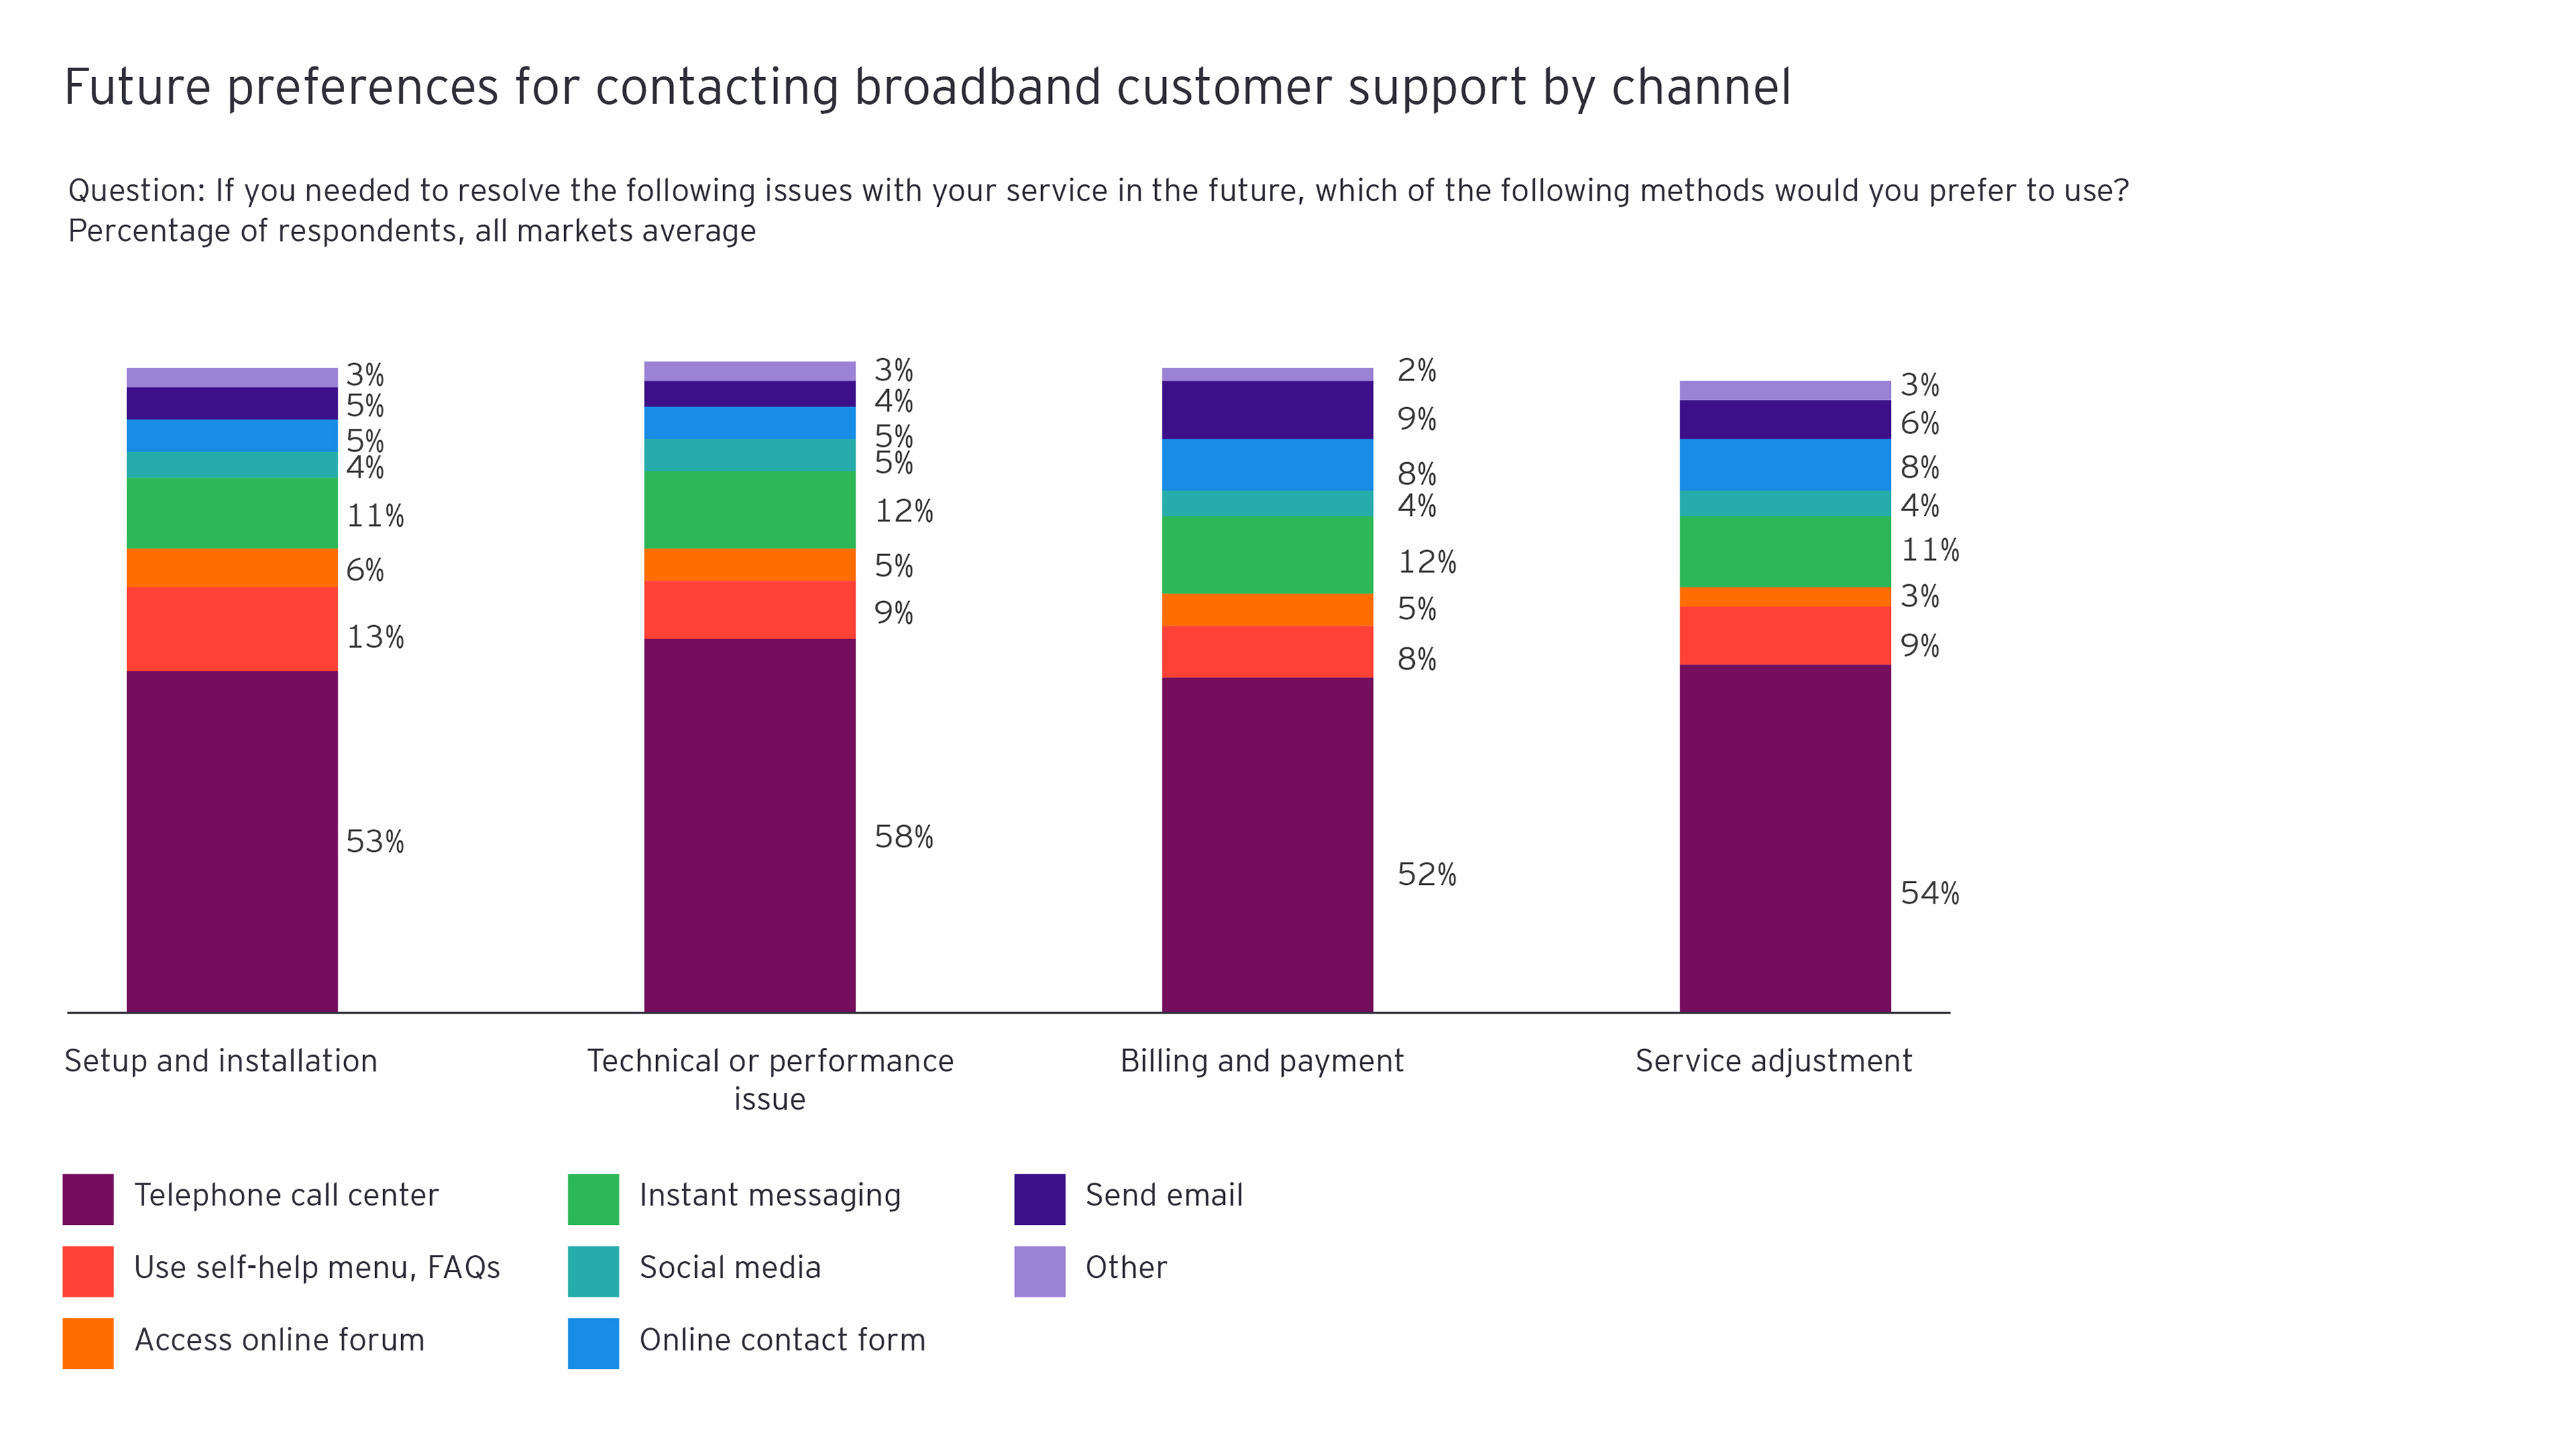 Figure 7: Future preferences for contacting broadband customer support by channel